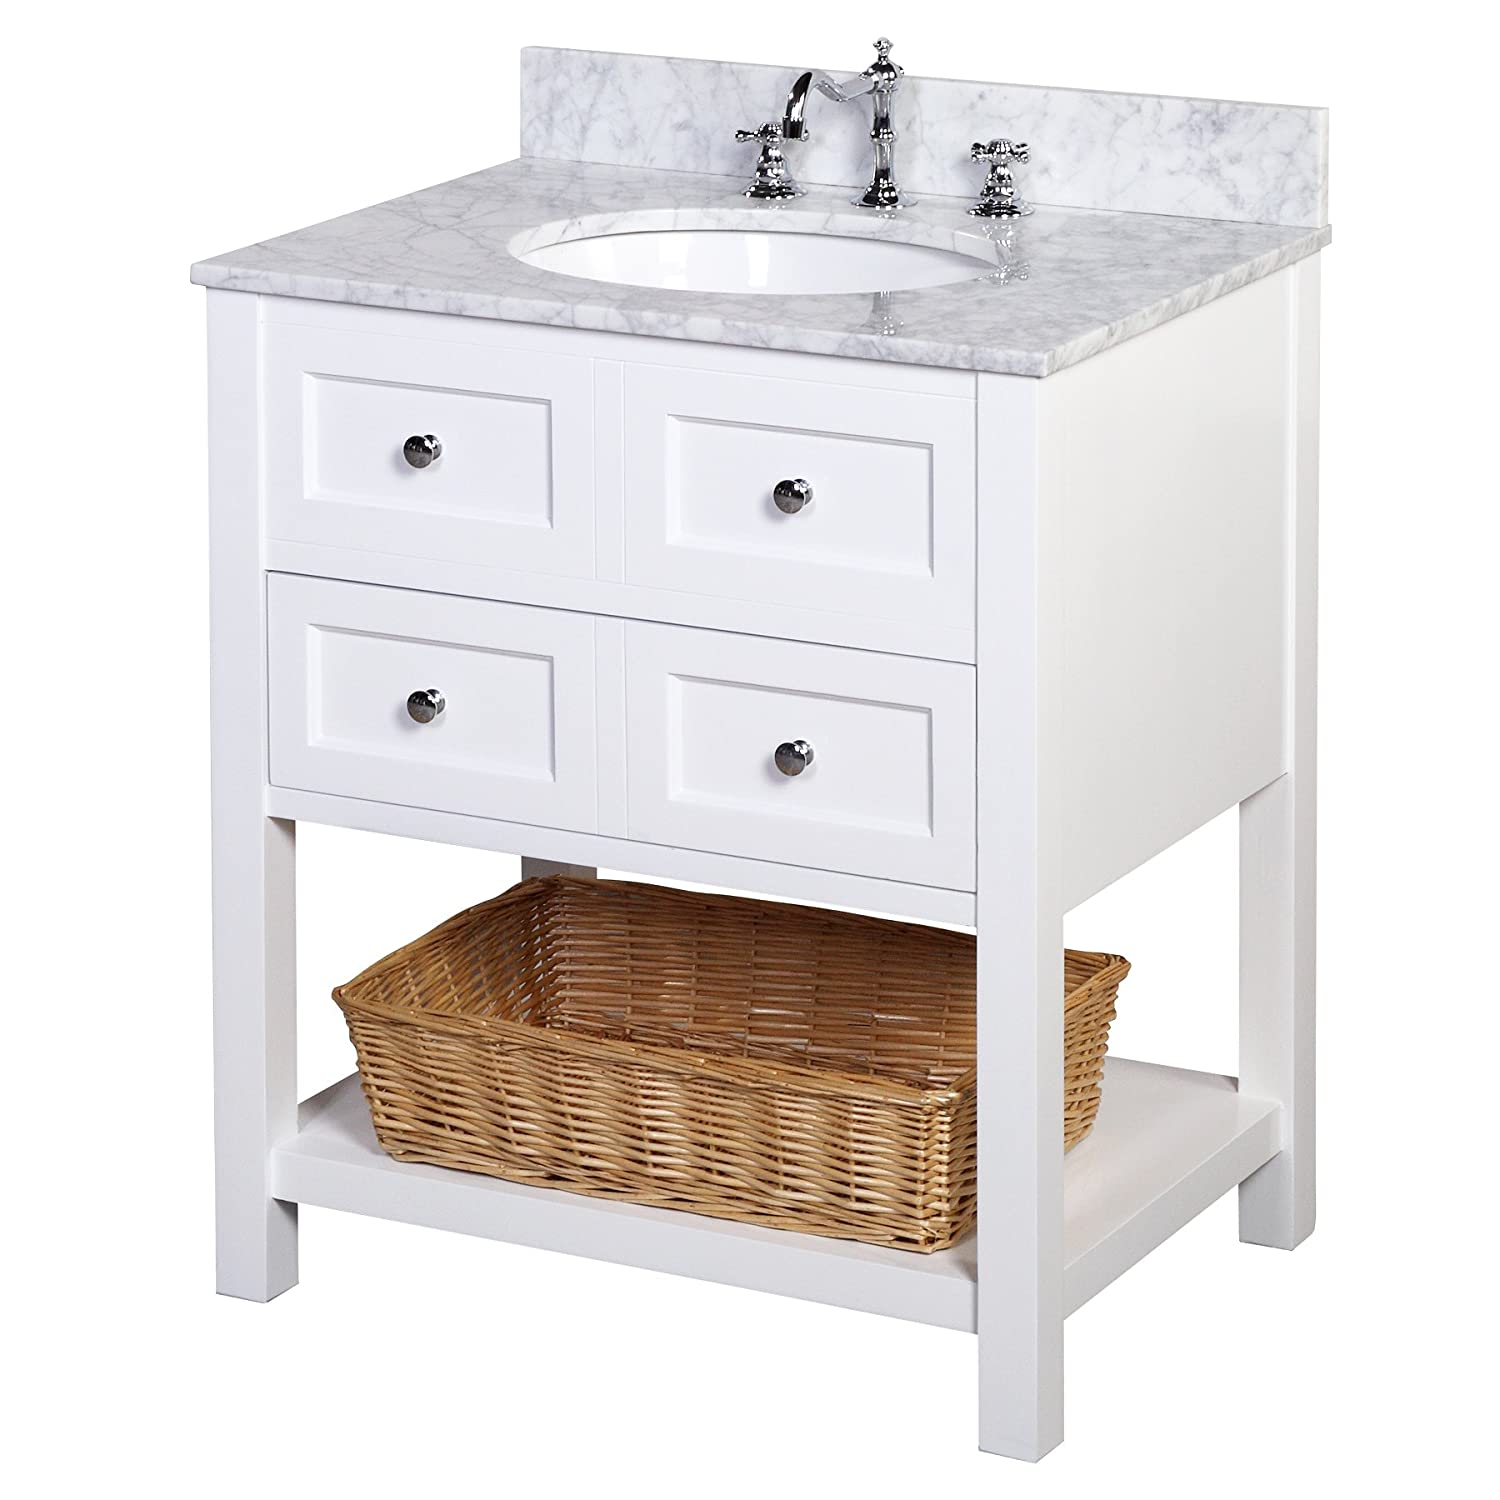 size of with and top cabinet organizer bathroom full vanity storage drawers sink drawer single inch sturdy